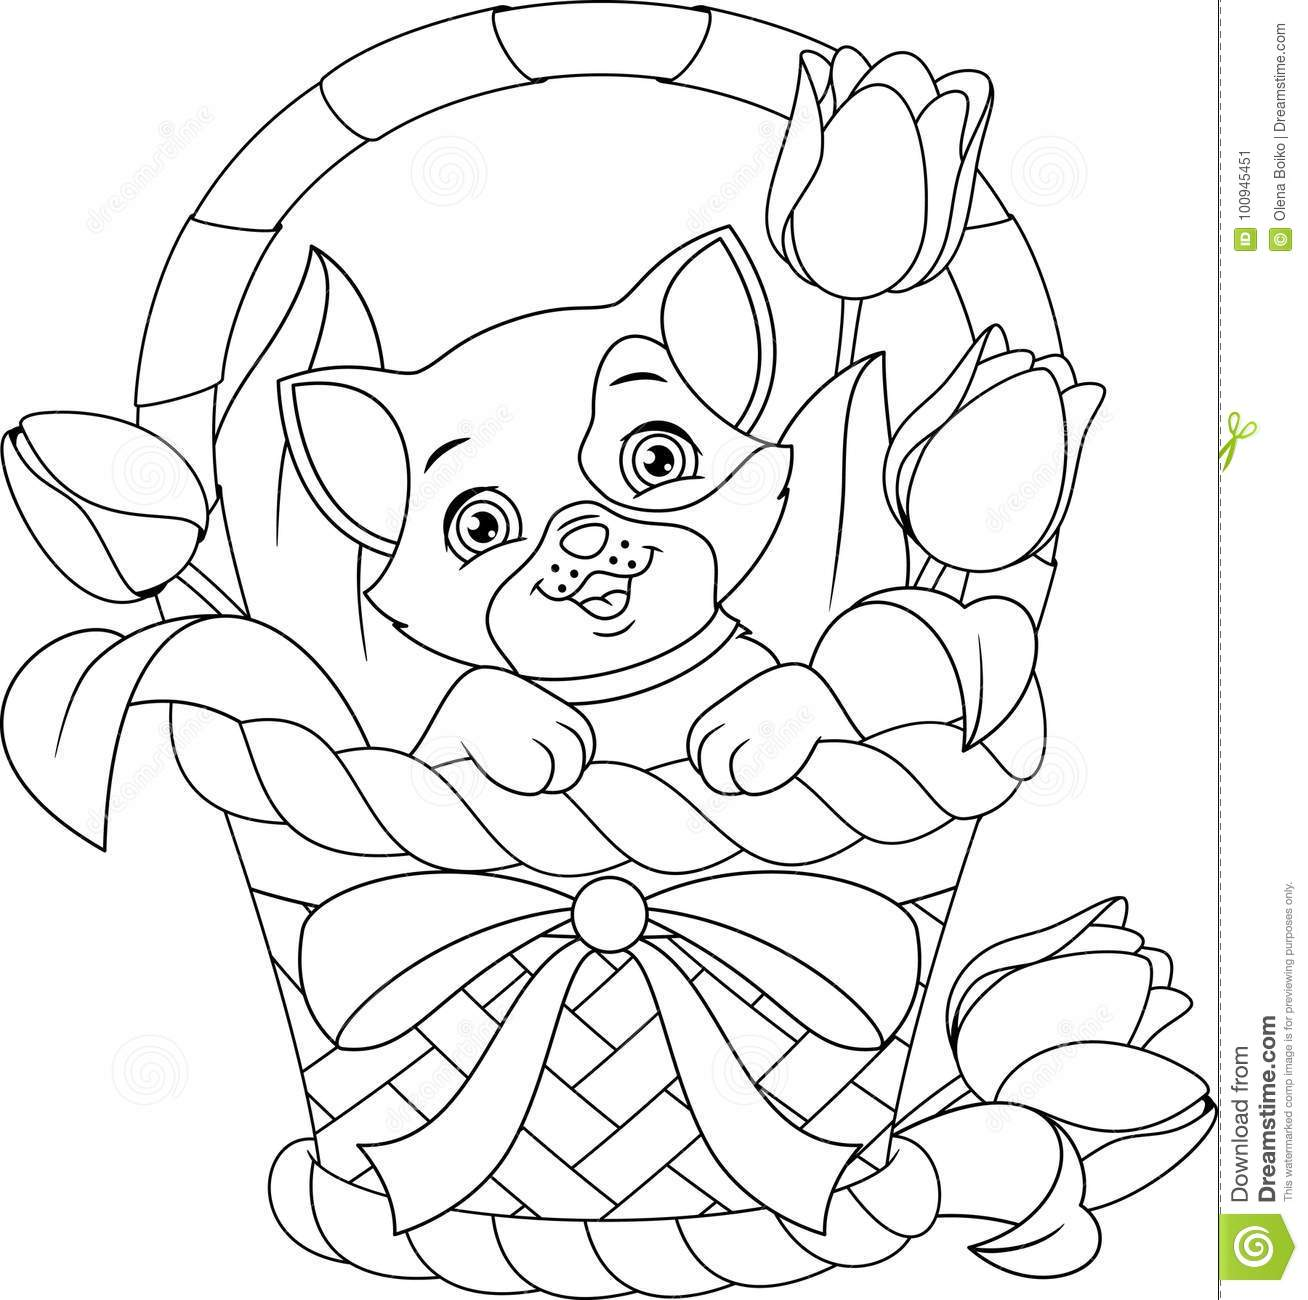 Cat In Basket Coloring Page Stock Vector